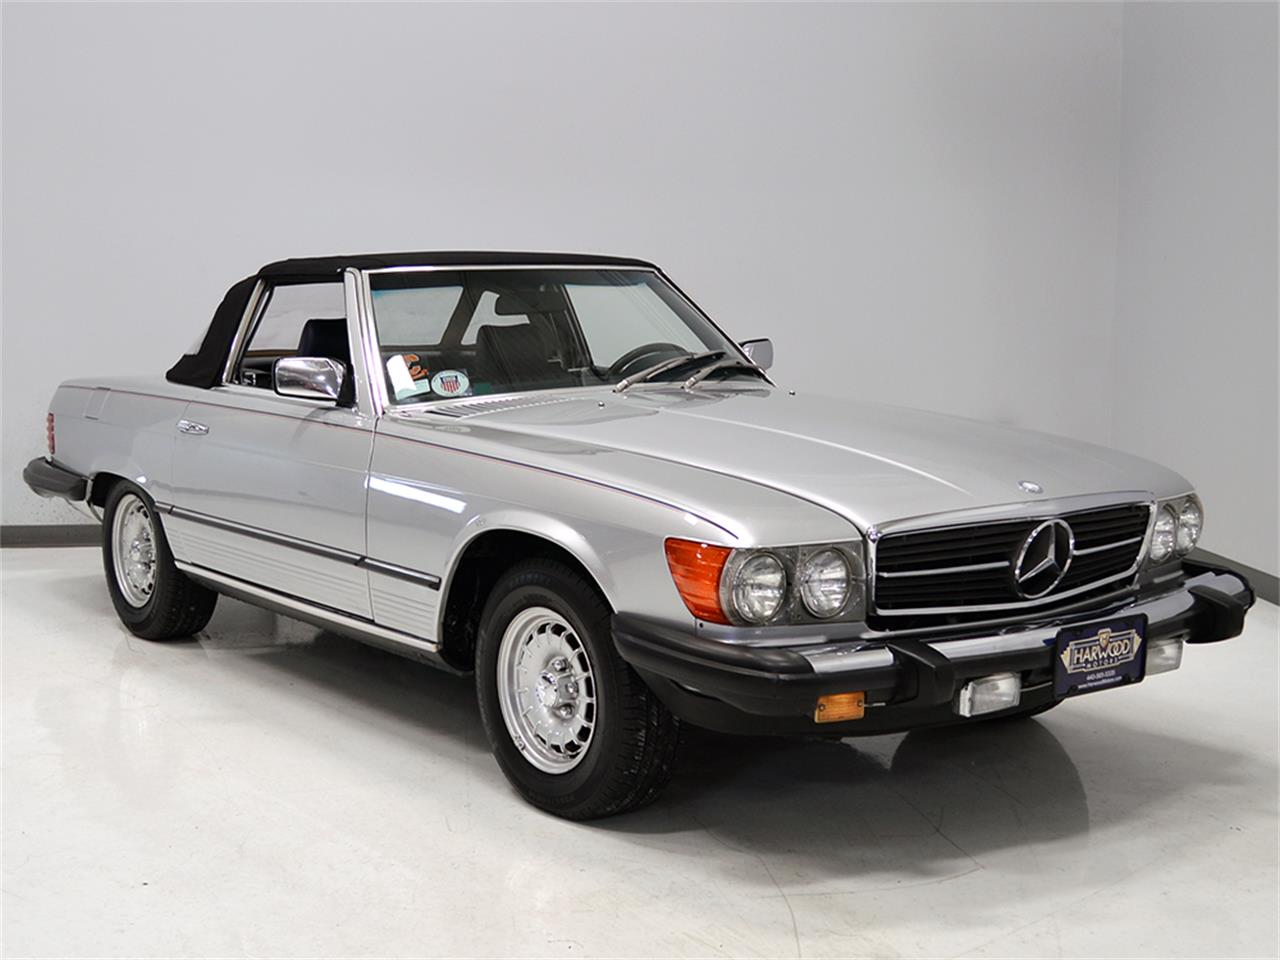 Large Picture of '84 Mercedes-Benz 380SL located in Ohio - $17,900.00 - KA2F